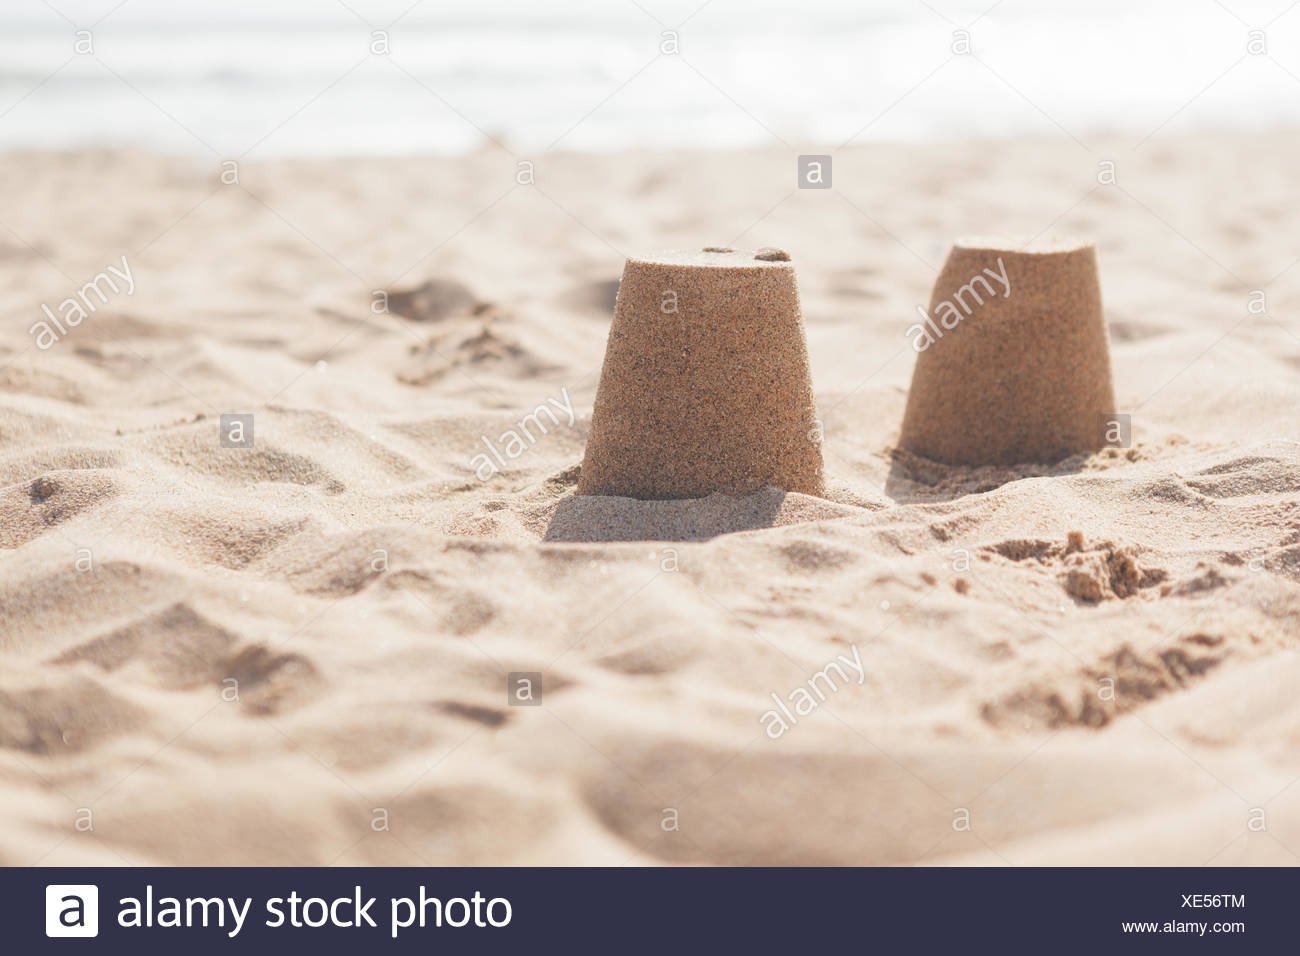 Heap Of Sand At Beach - Stock Image